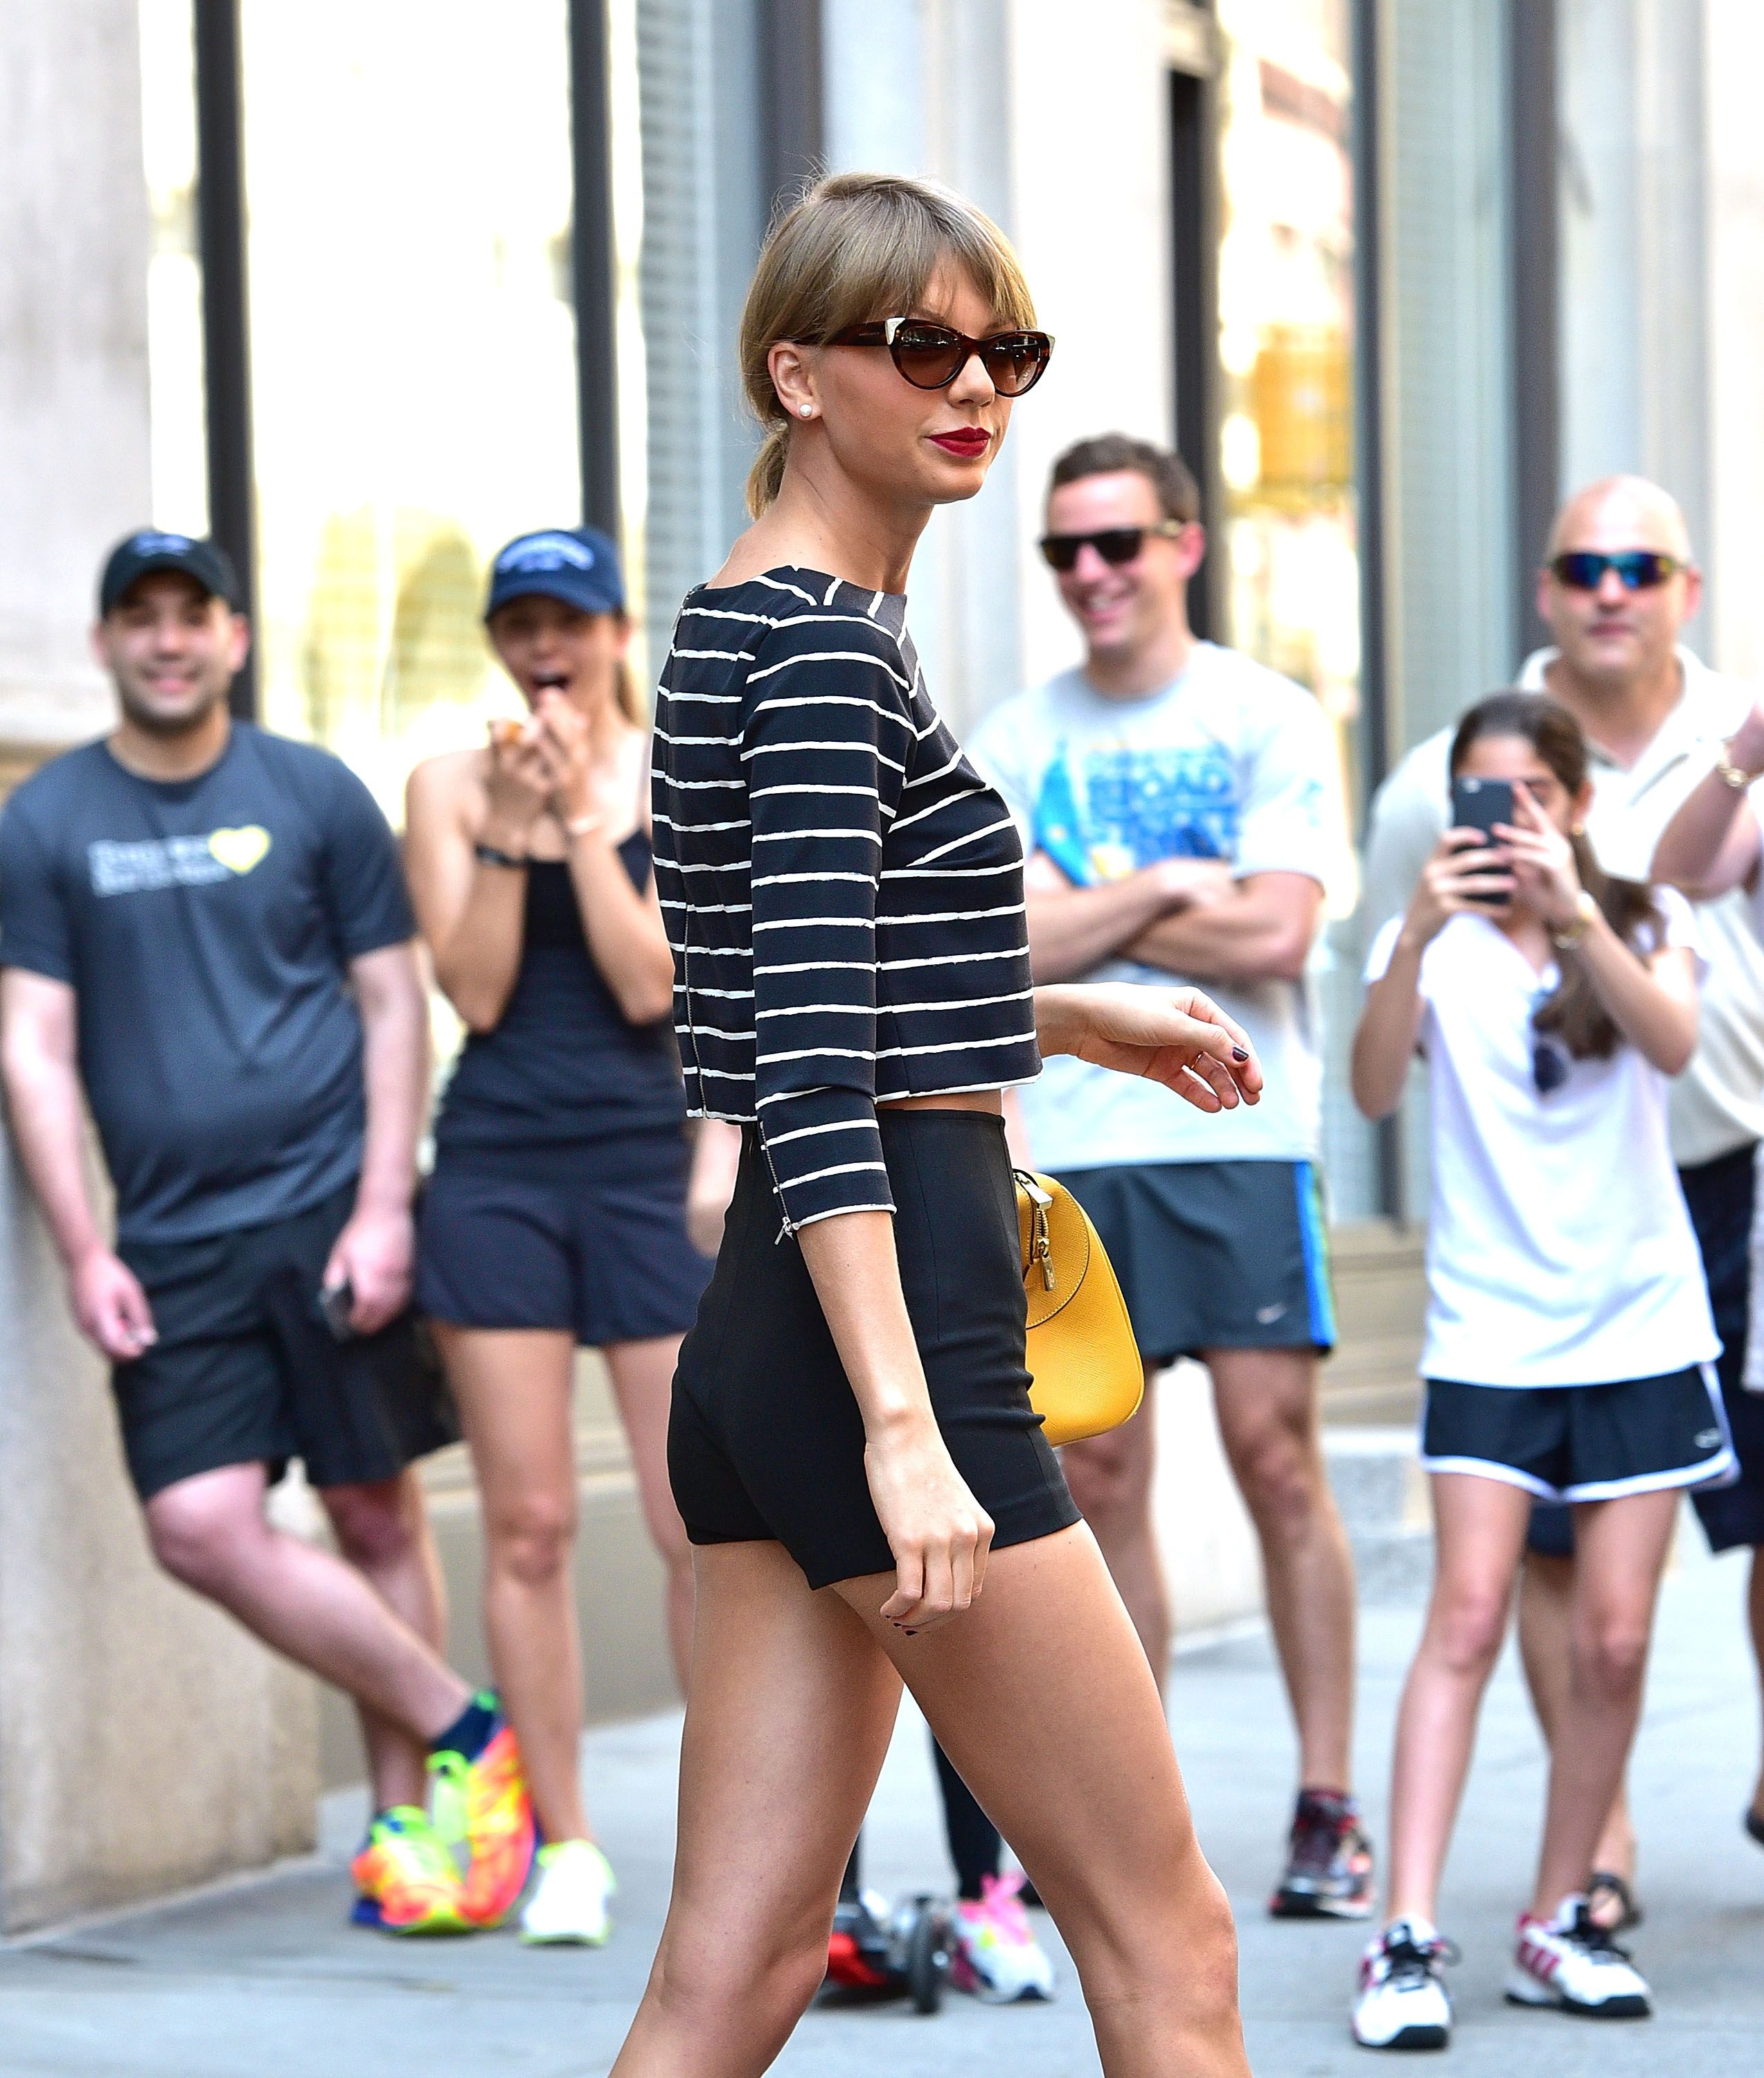 Taylor Swift Goes To Extreme Lengths To Avoid The Paparazzi On Her Hike